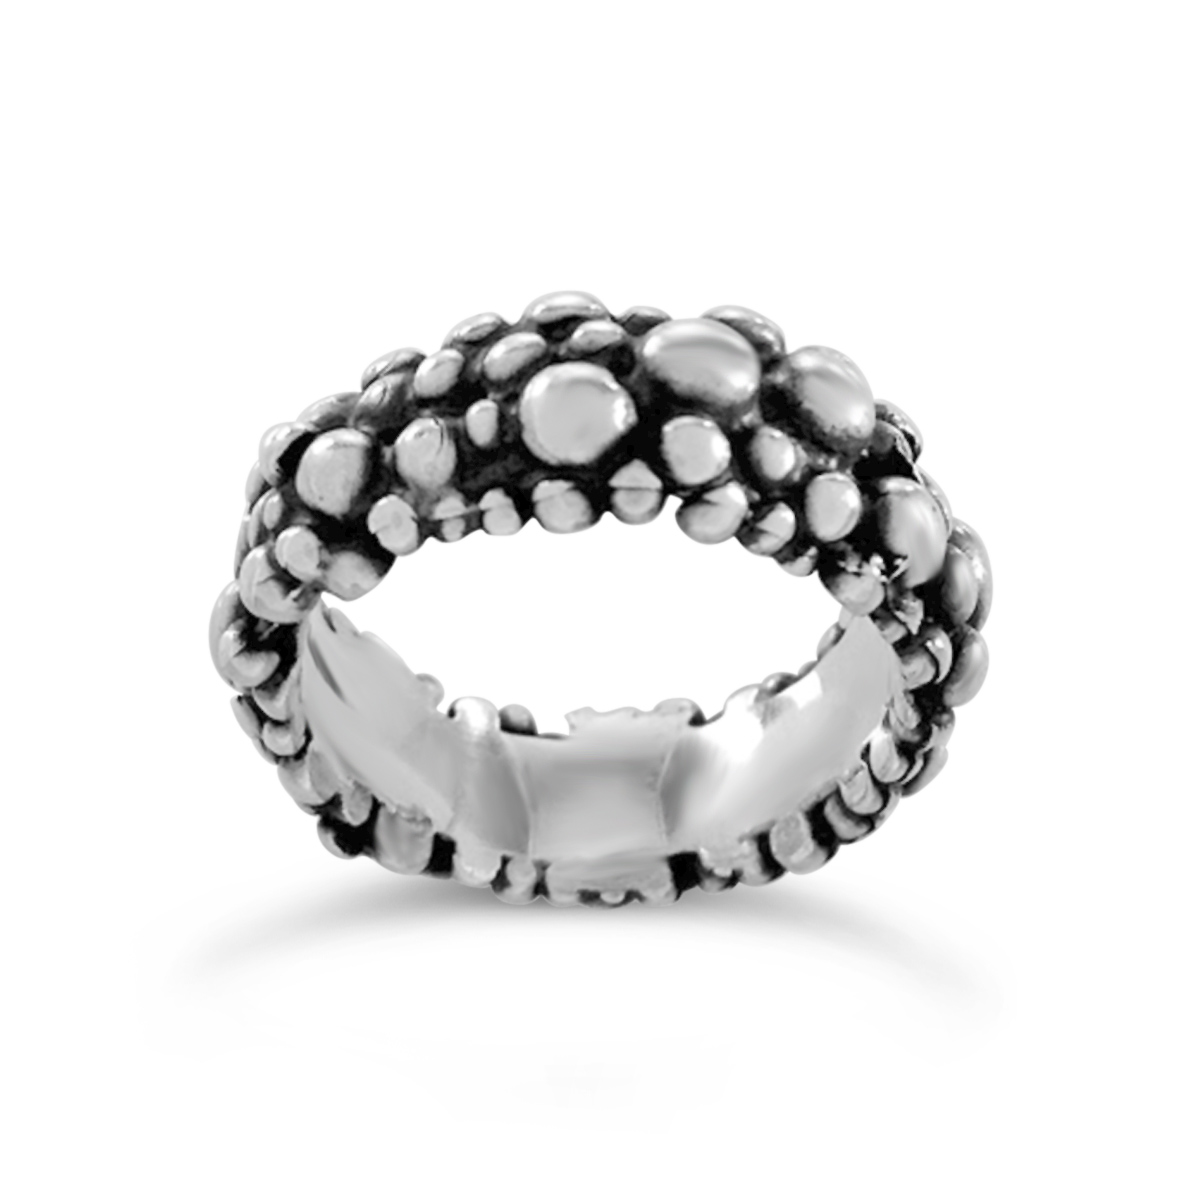 Molecule eternity ring silver 8mm wide